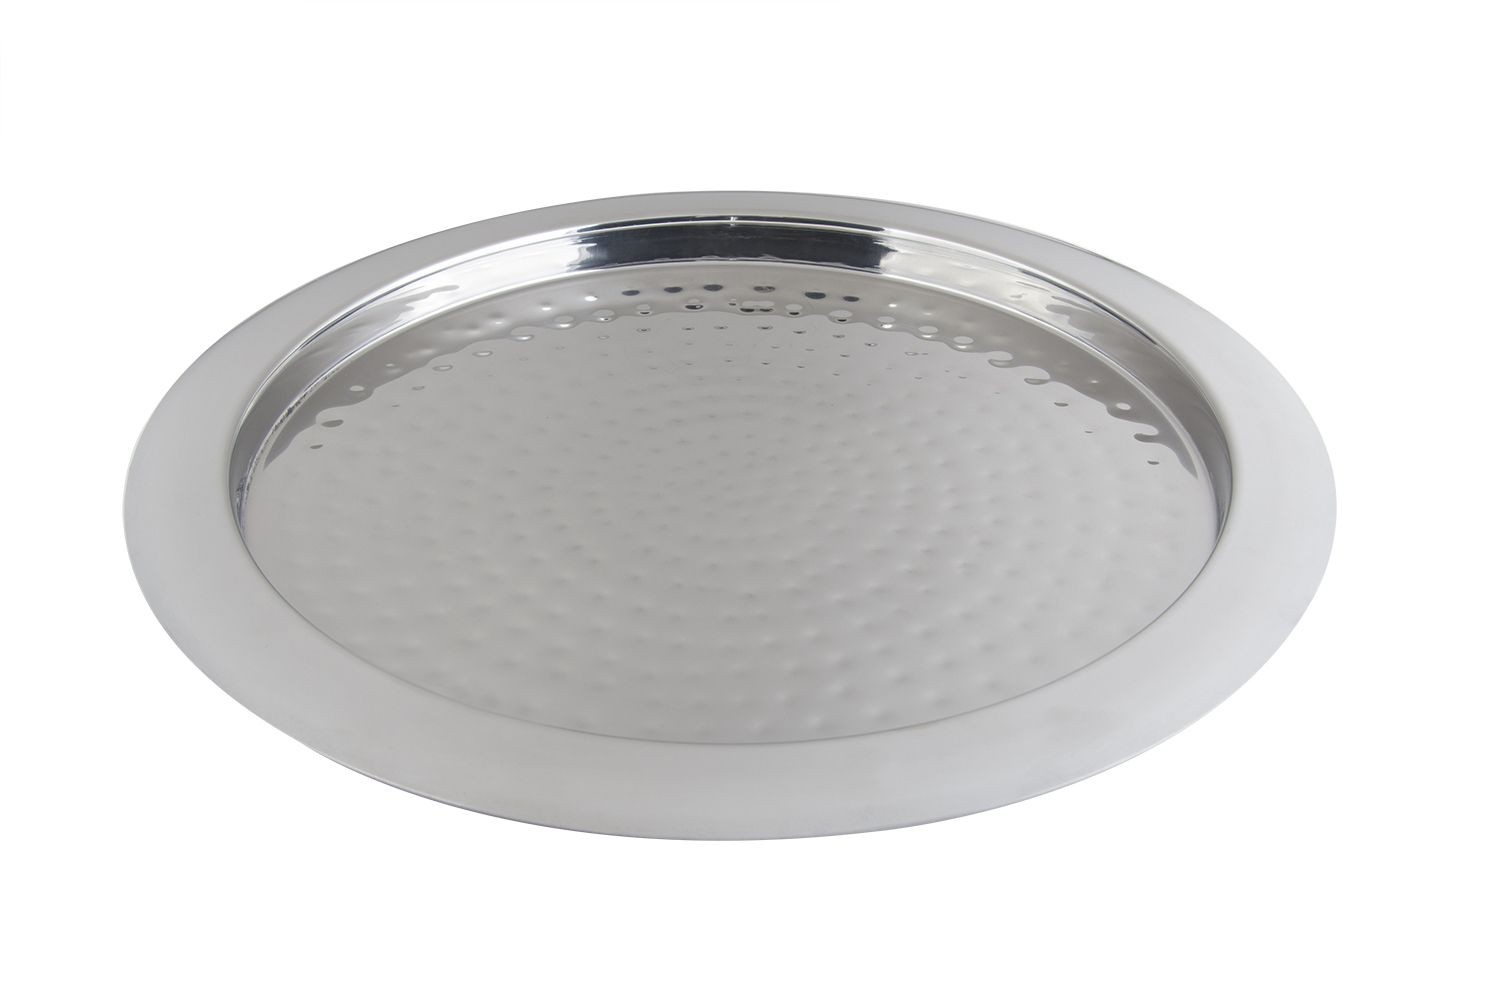 """Bon Chef 61278 Stainless Steel Round Hammered Tray, 15 1/2"""" Dia."""